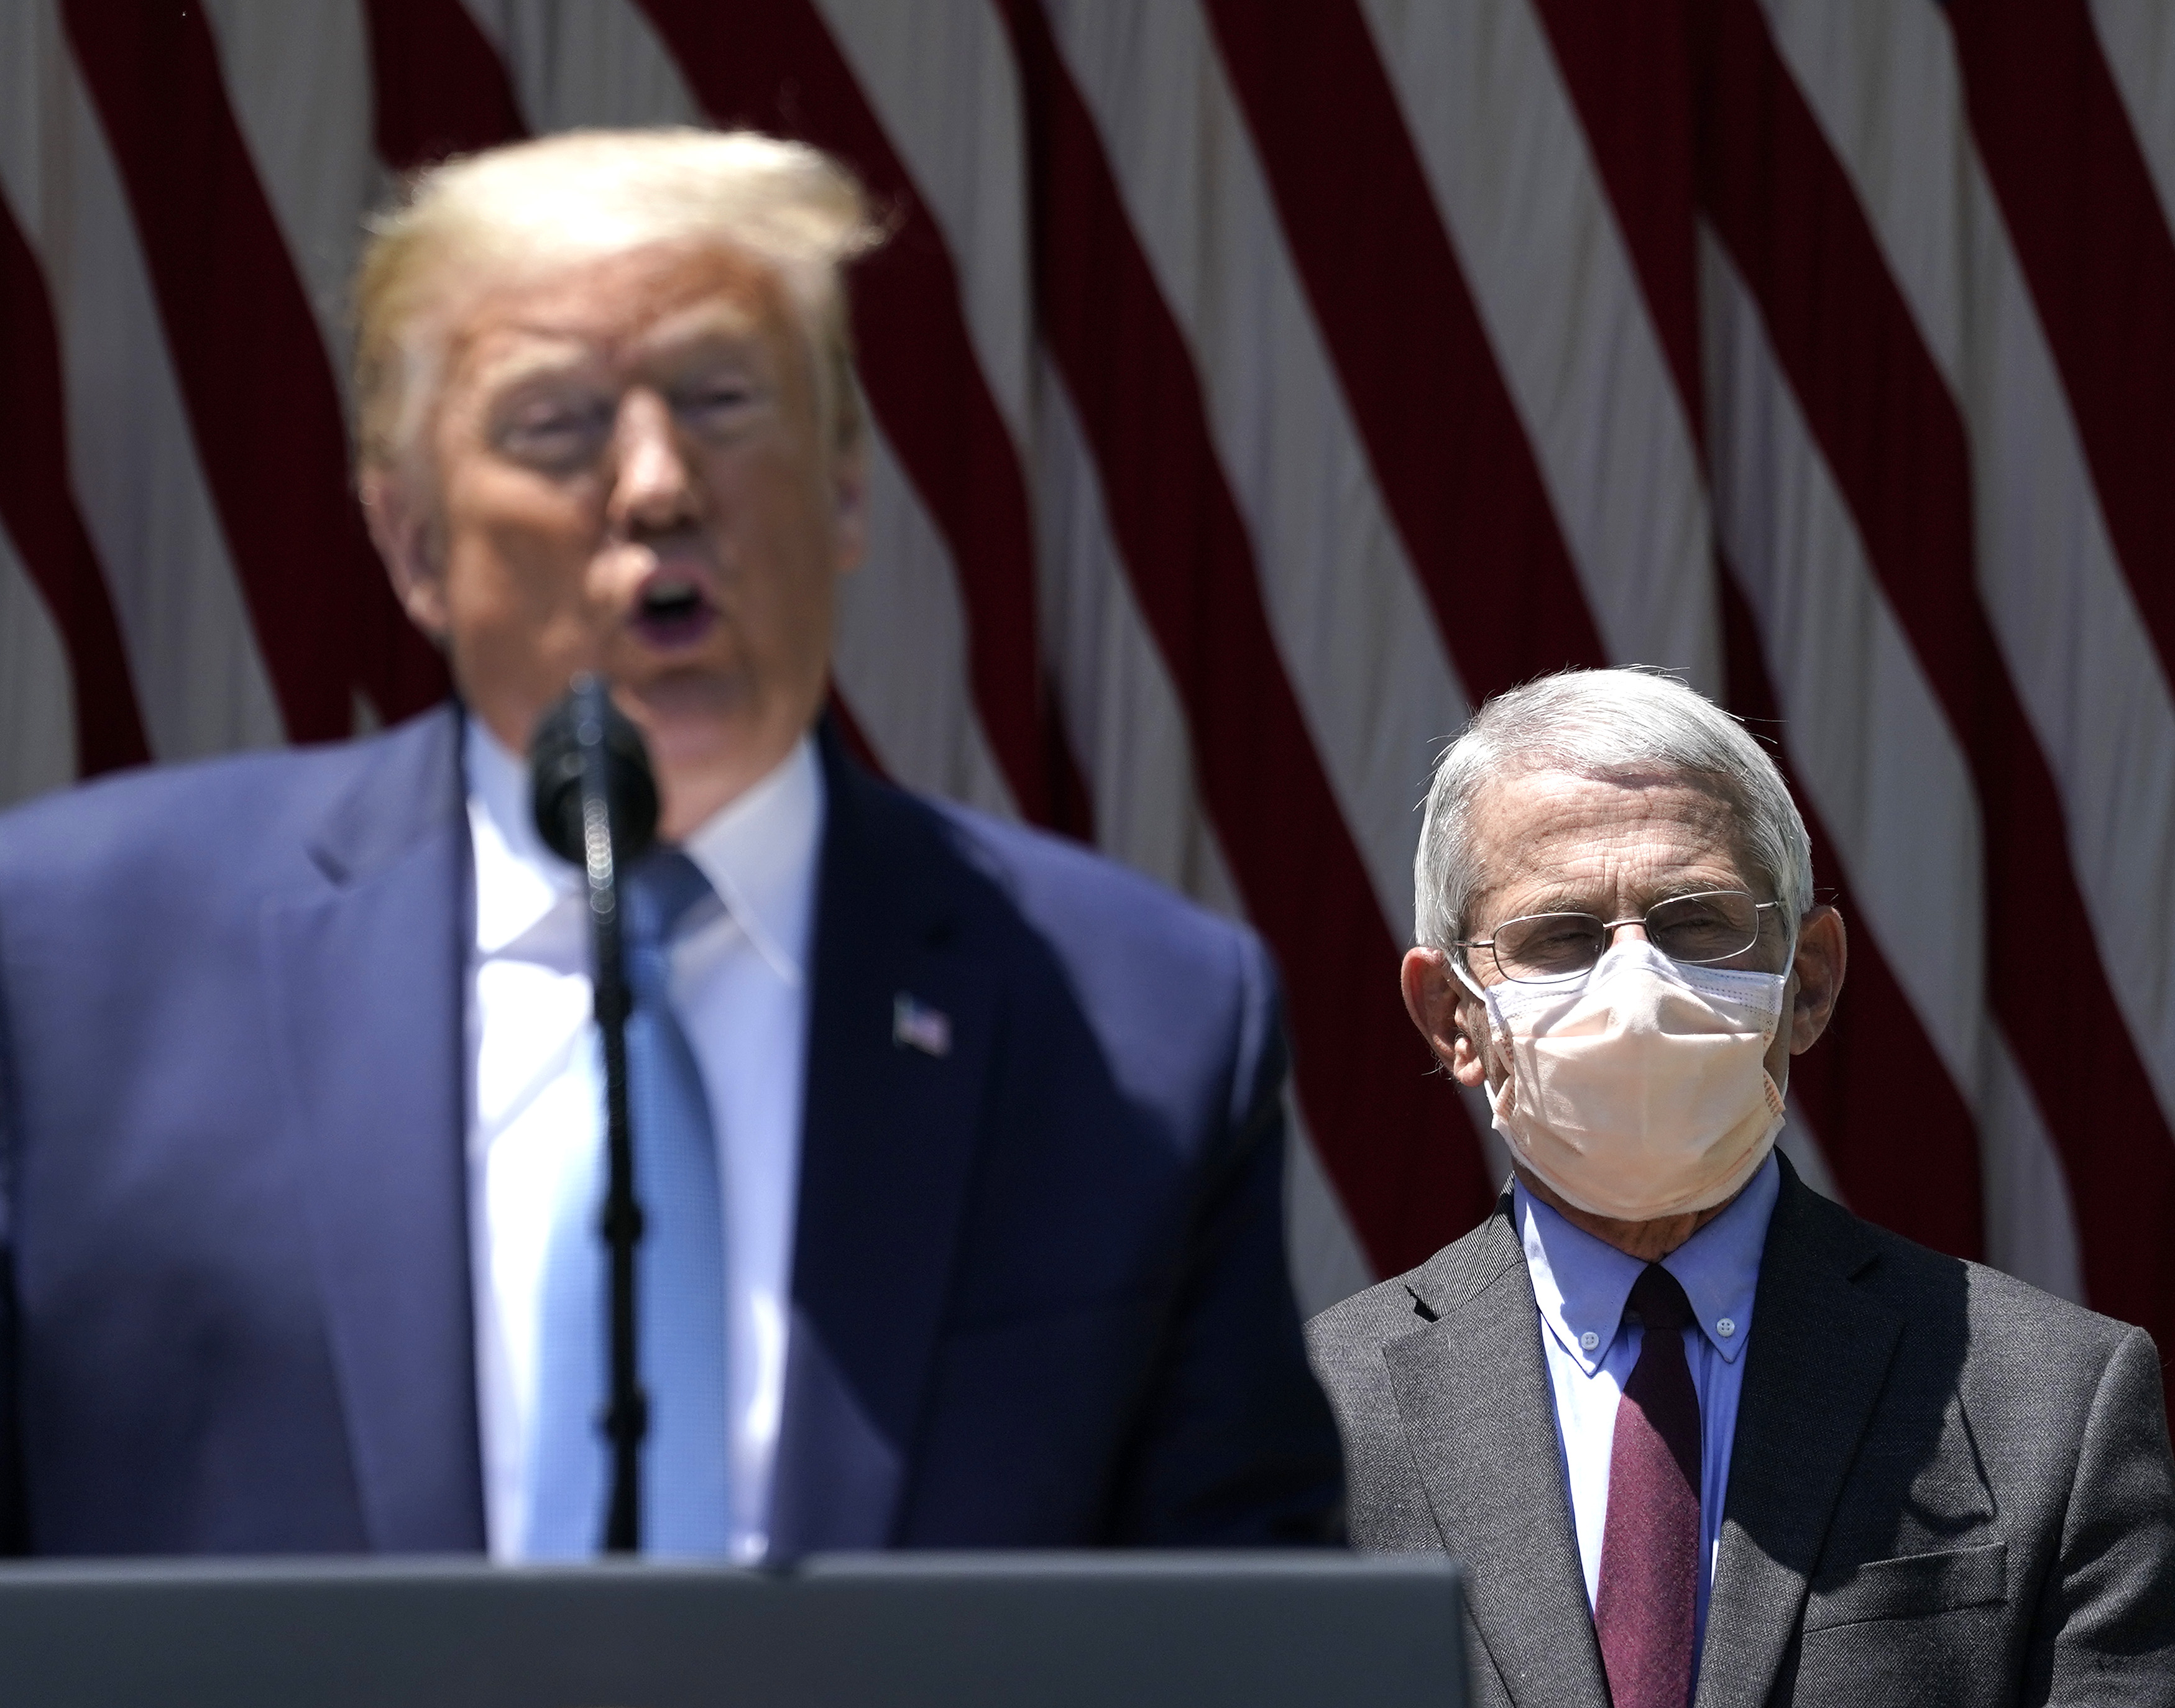 "WASHINGTON, DC - MAY 15: U.S. President Donald Trump is flanked by Dr. Anthony Fauci, director of the National Institute of Allergy and Infectious Diseases while speaking about coronavirus vaccine development in the Rose Garden of the White House on May 15, 2020 in Washington, DC. Dubbed ""Operation Warp Speed,"" the Trump administration is announcing plans for an all-out effort to produce and distribute a coronavirus vaccine by the end of 2020. (Photo by Drew Angerer/Getty Images)"